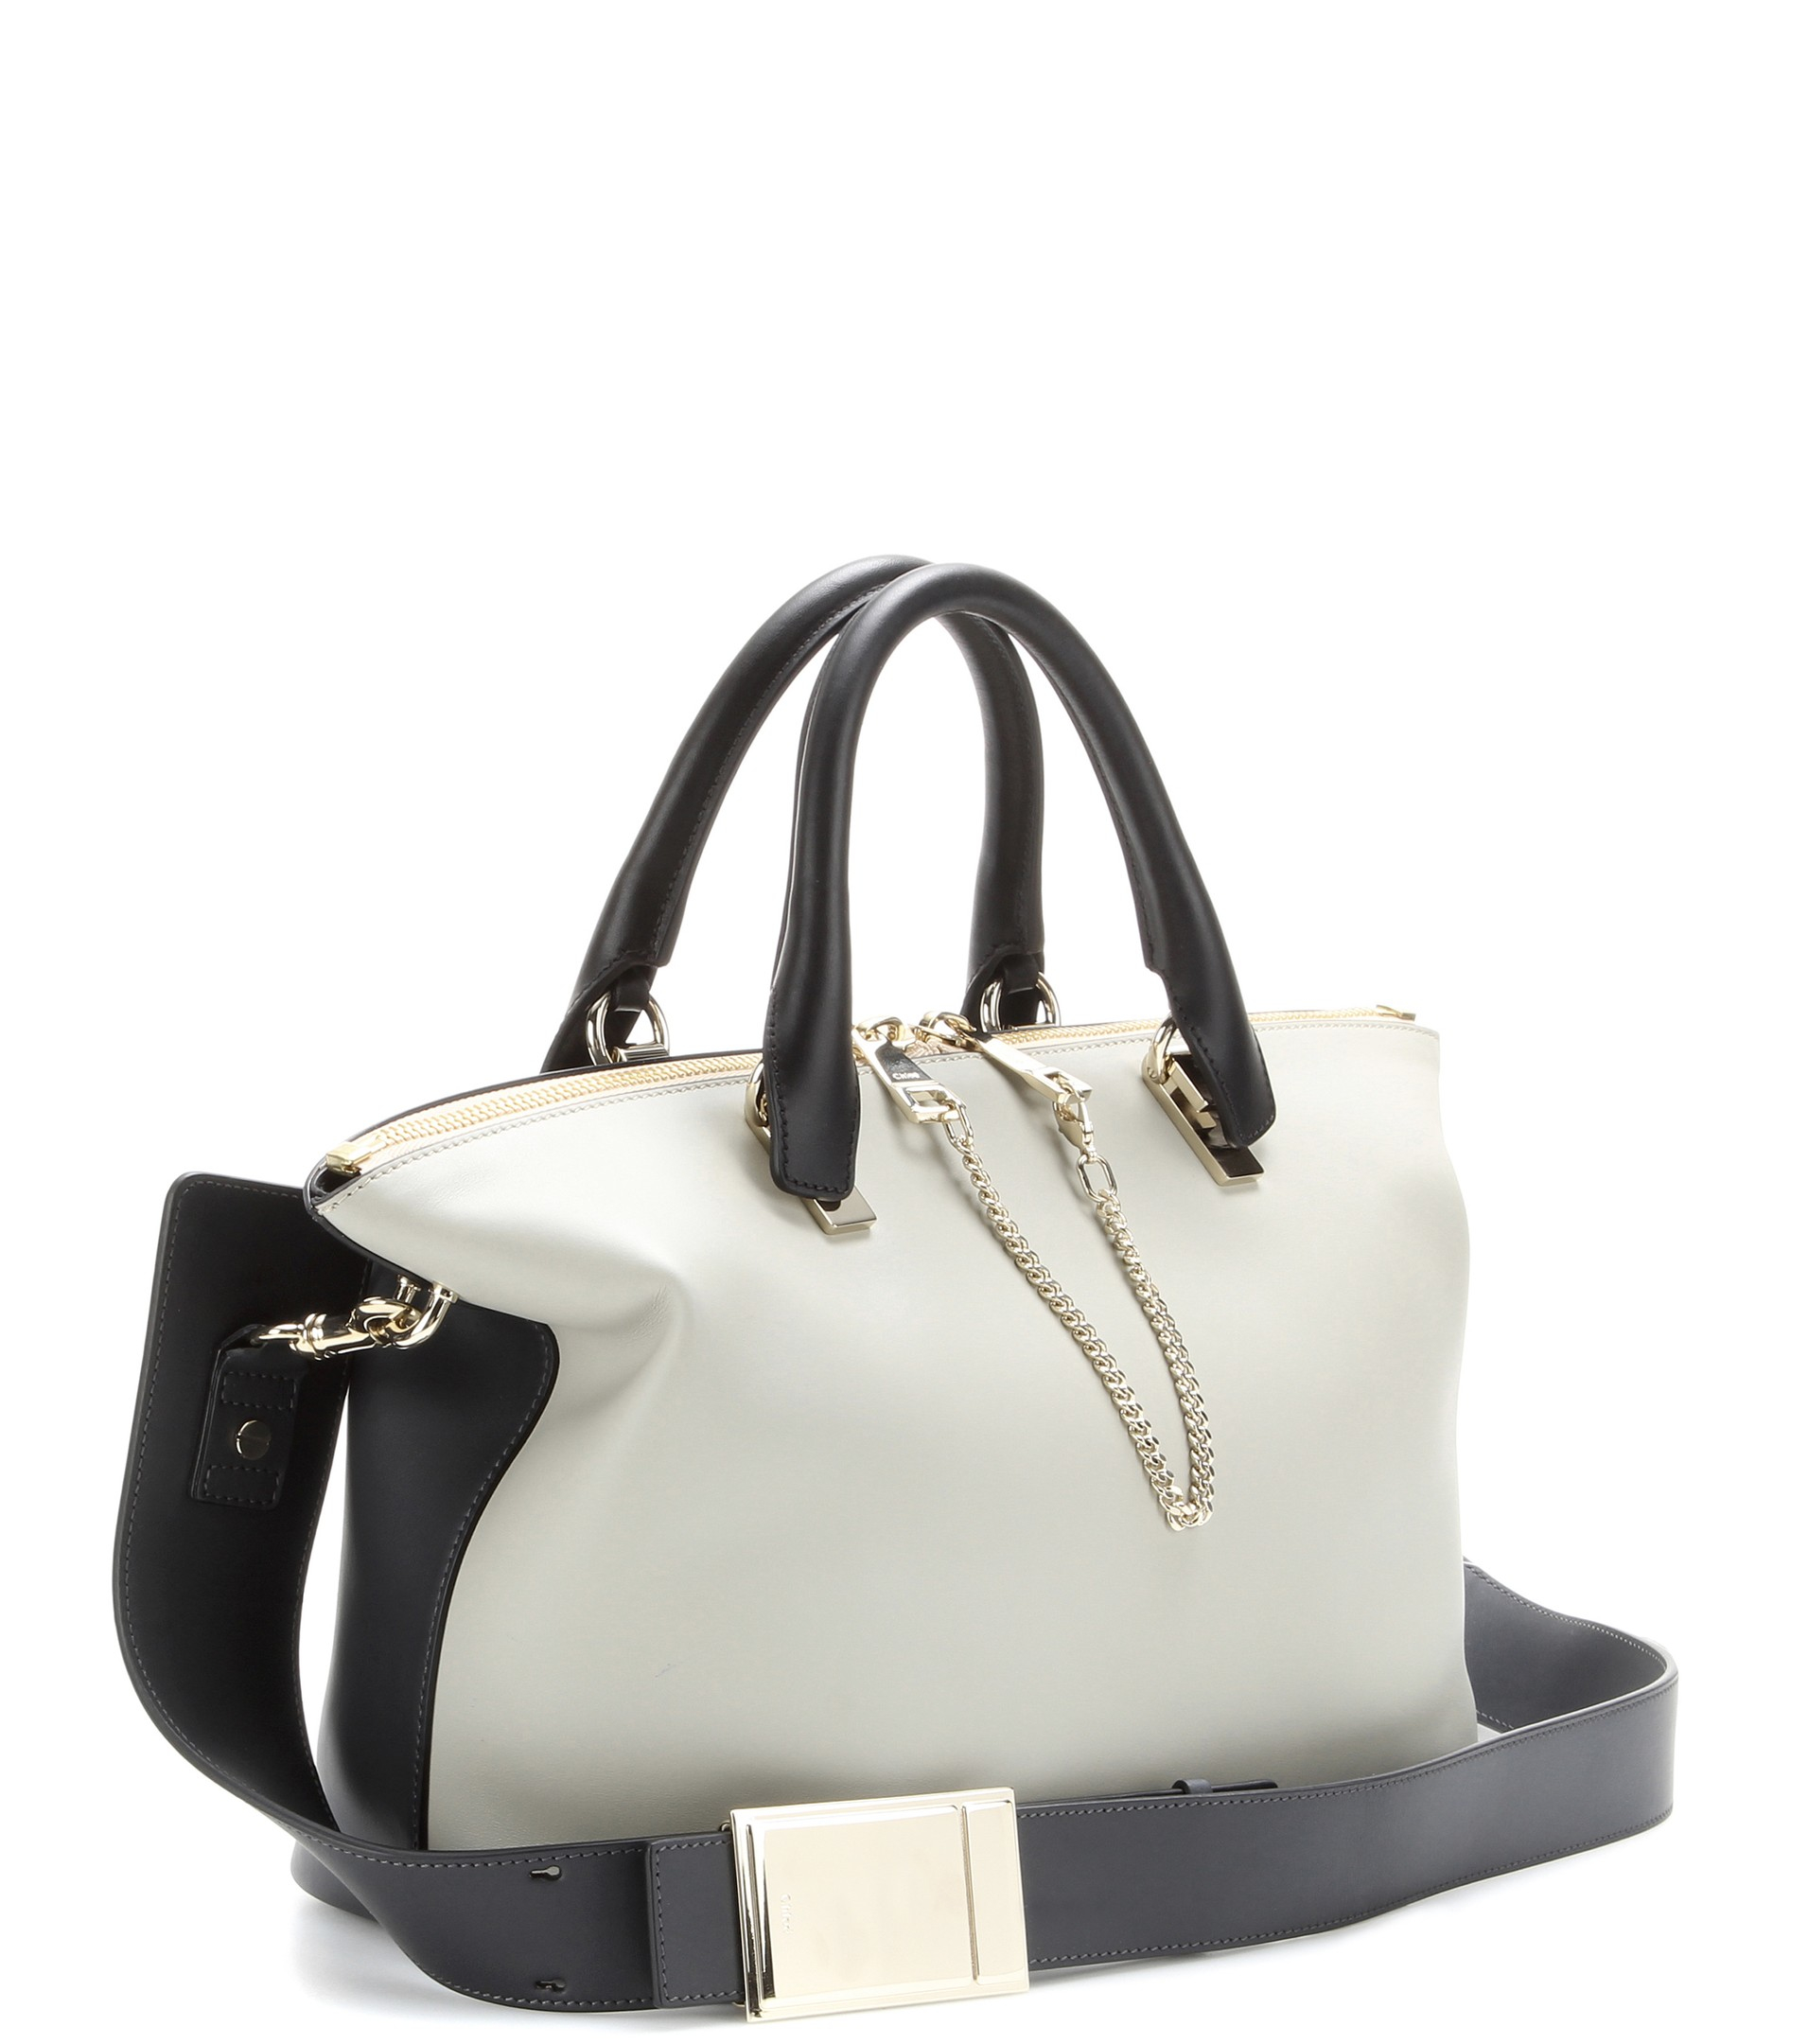 Chlo¨¦ Baylee Medium Leather Tote in Gray (Marshmallow Grey)   Lyst